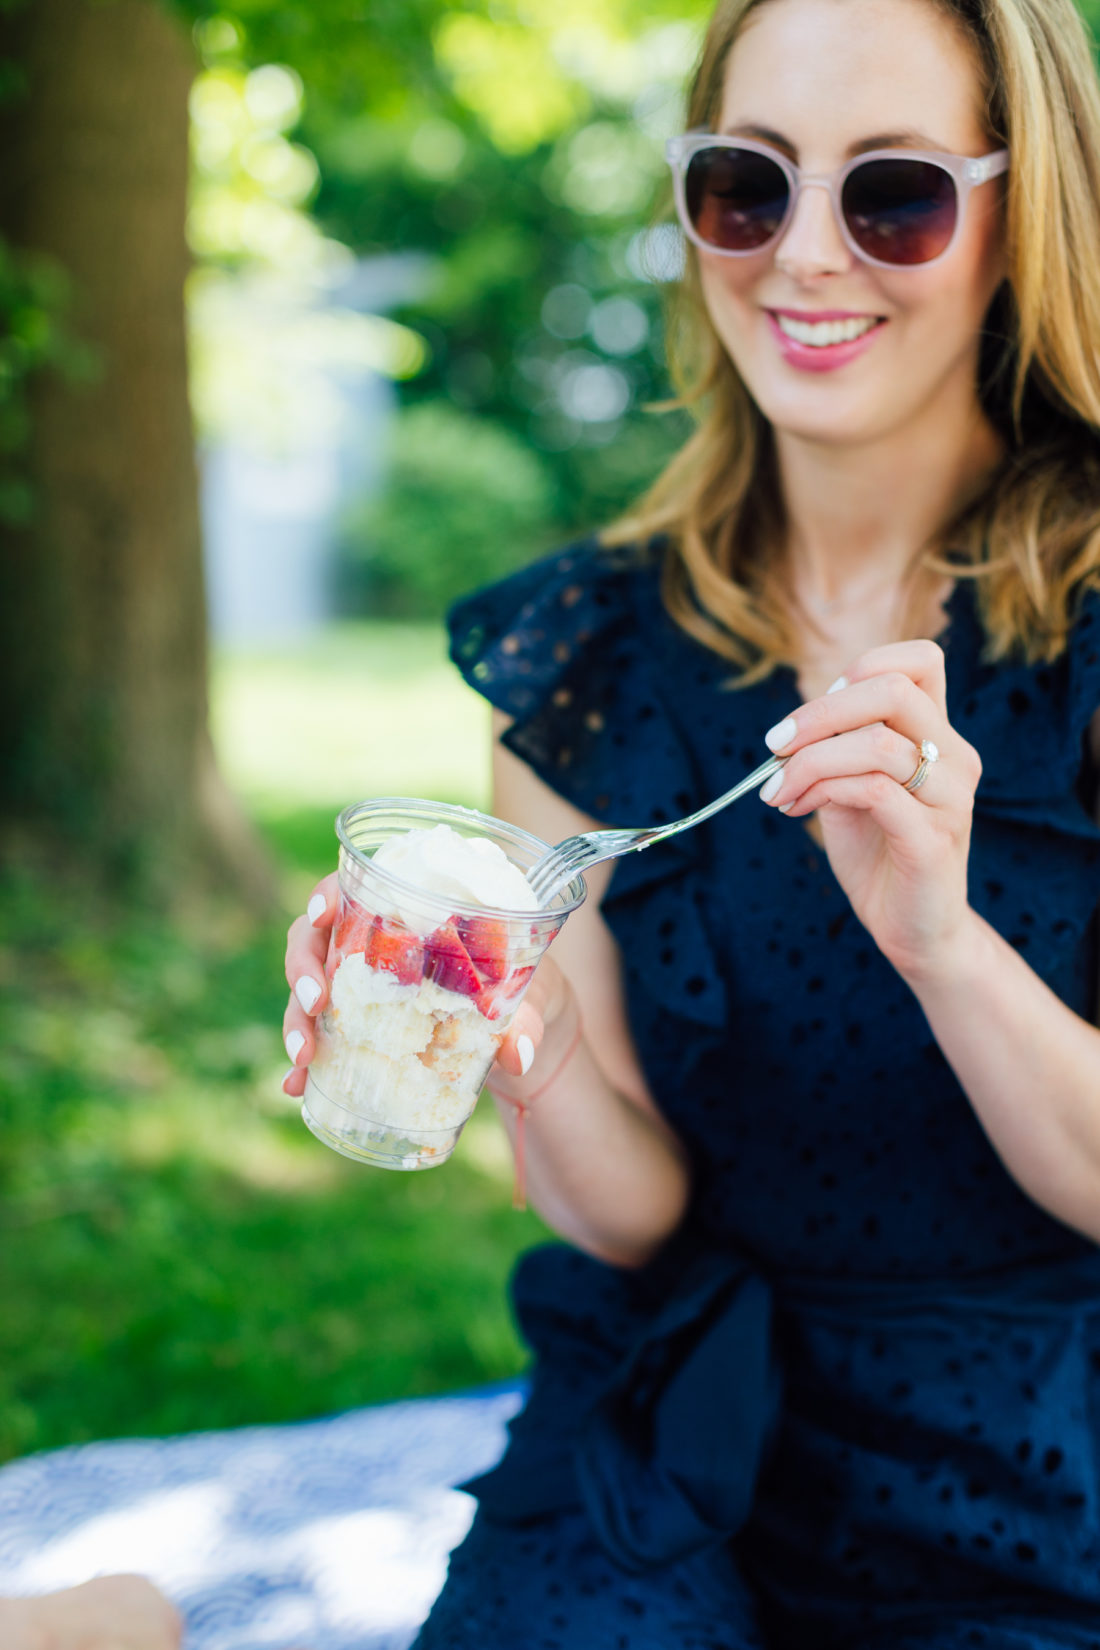 Eva Amurri Martino eats a strawberry dessert